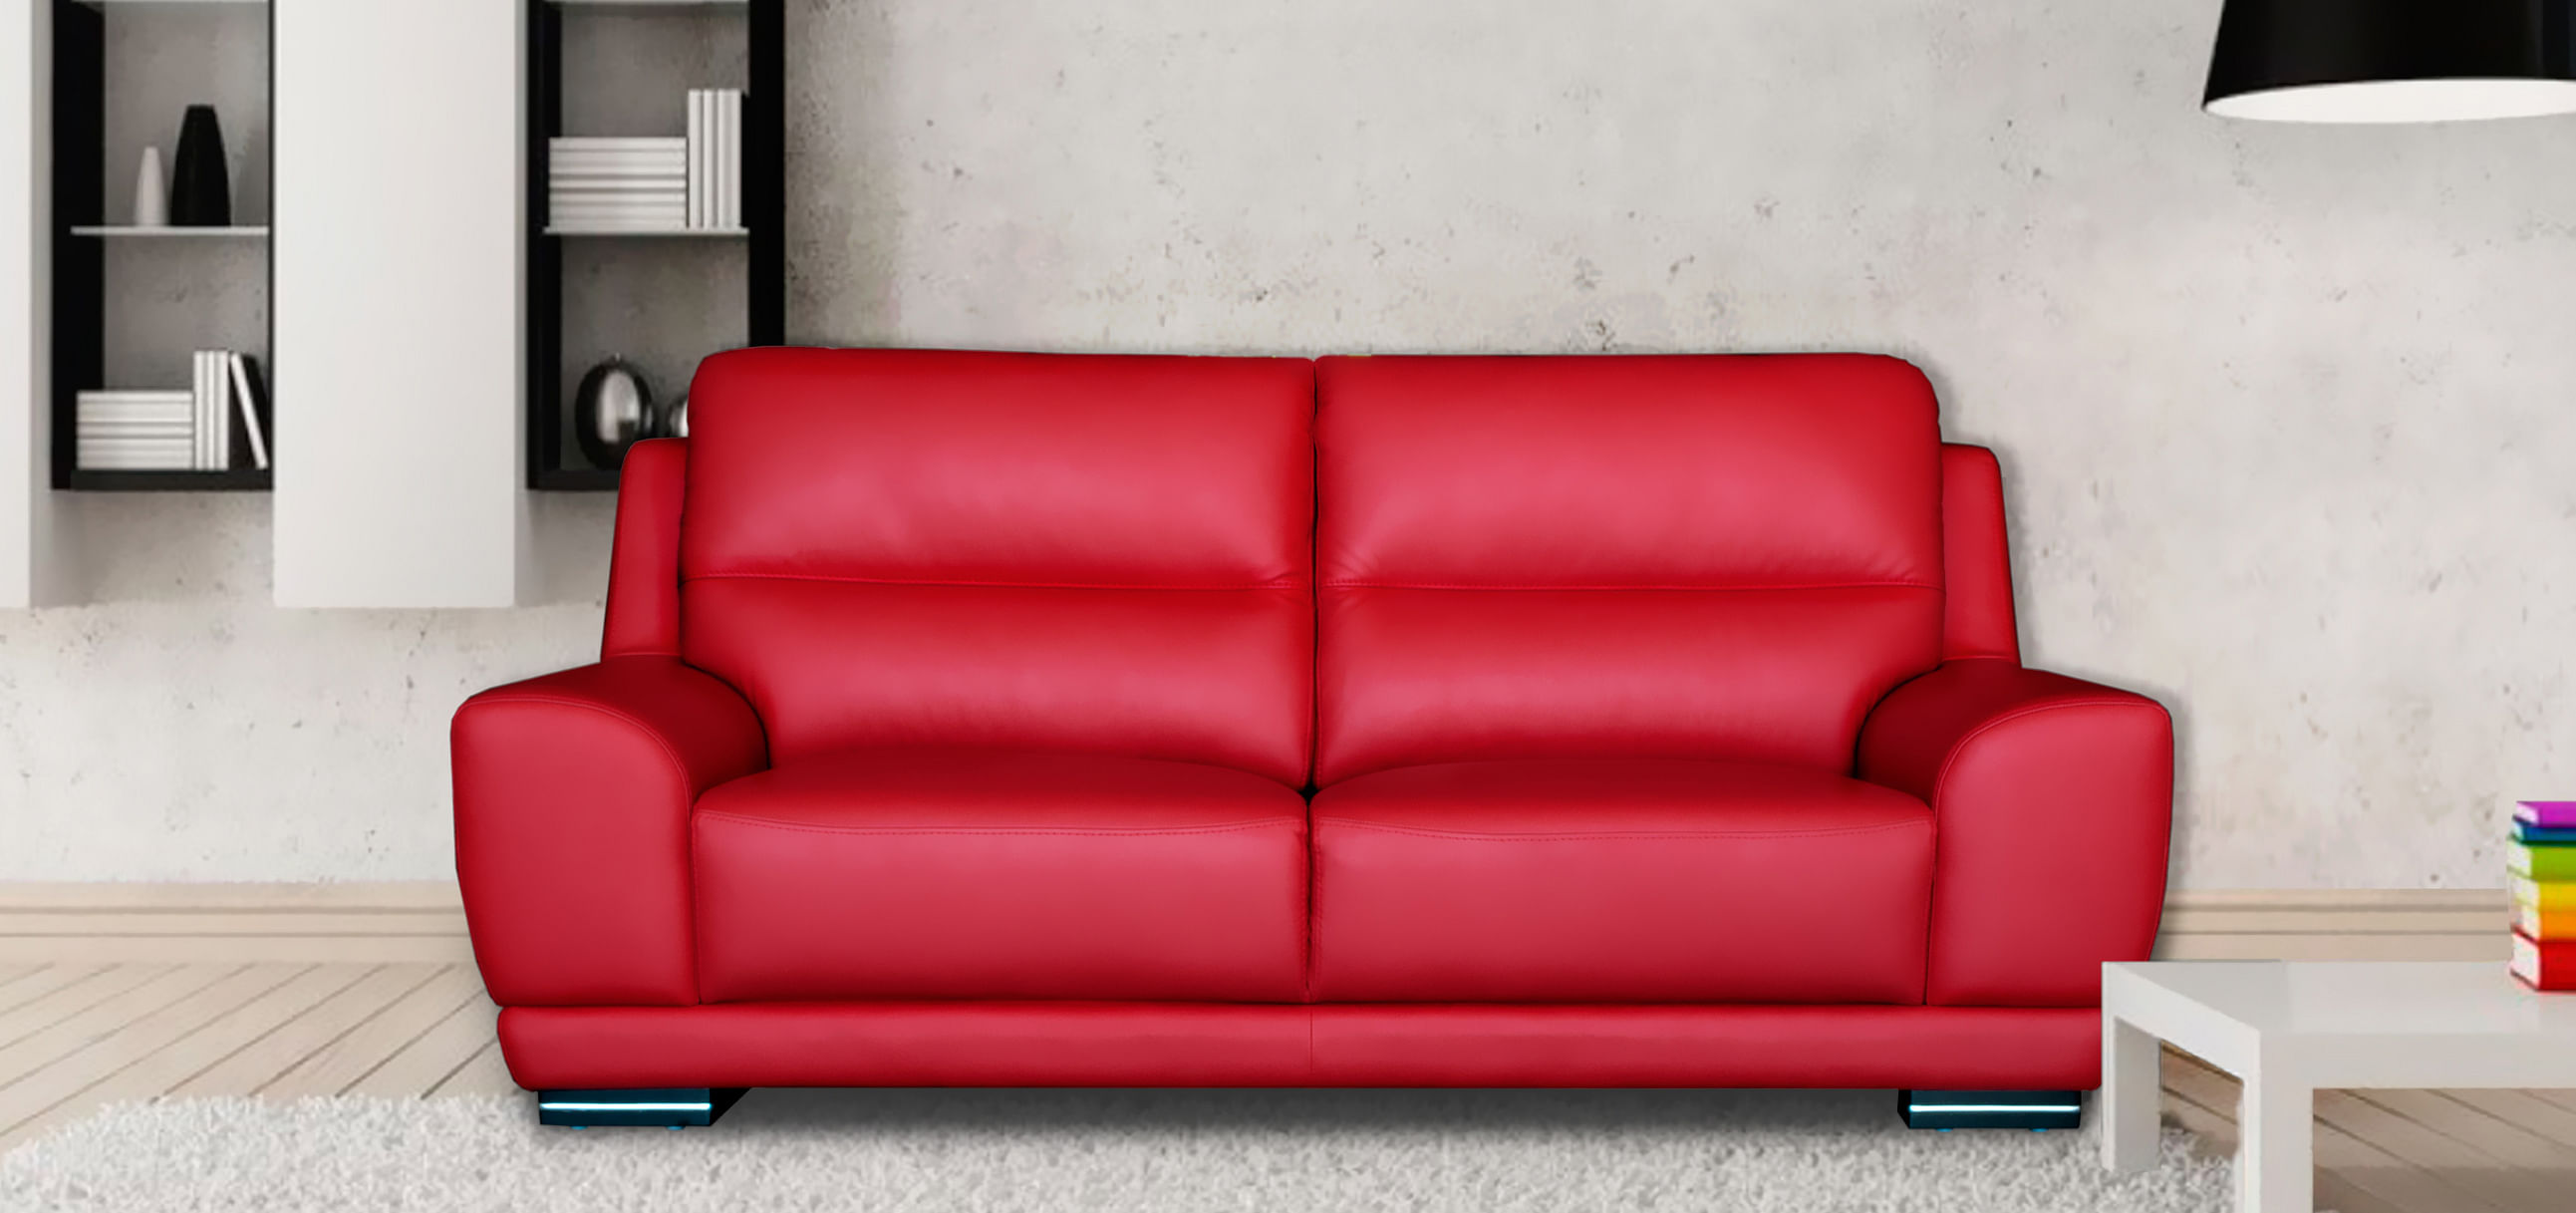 One Seat Sofa Bed Singapore